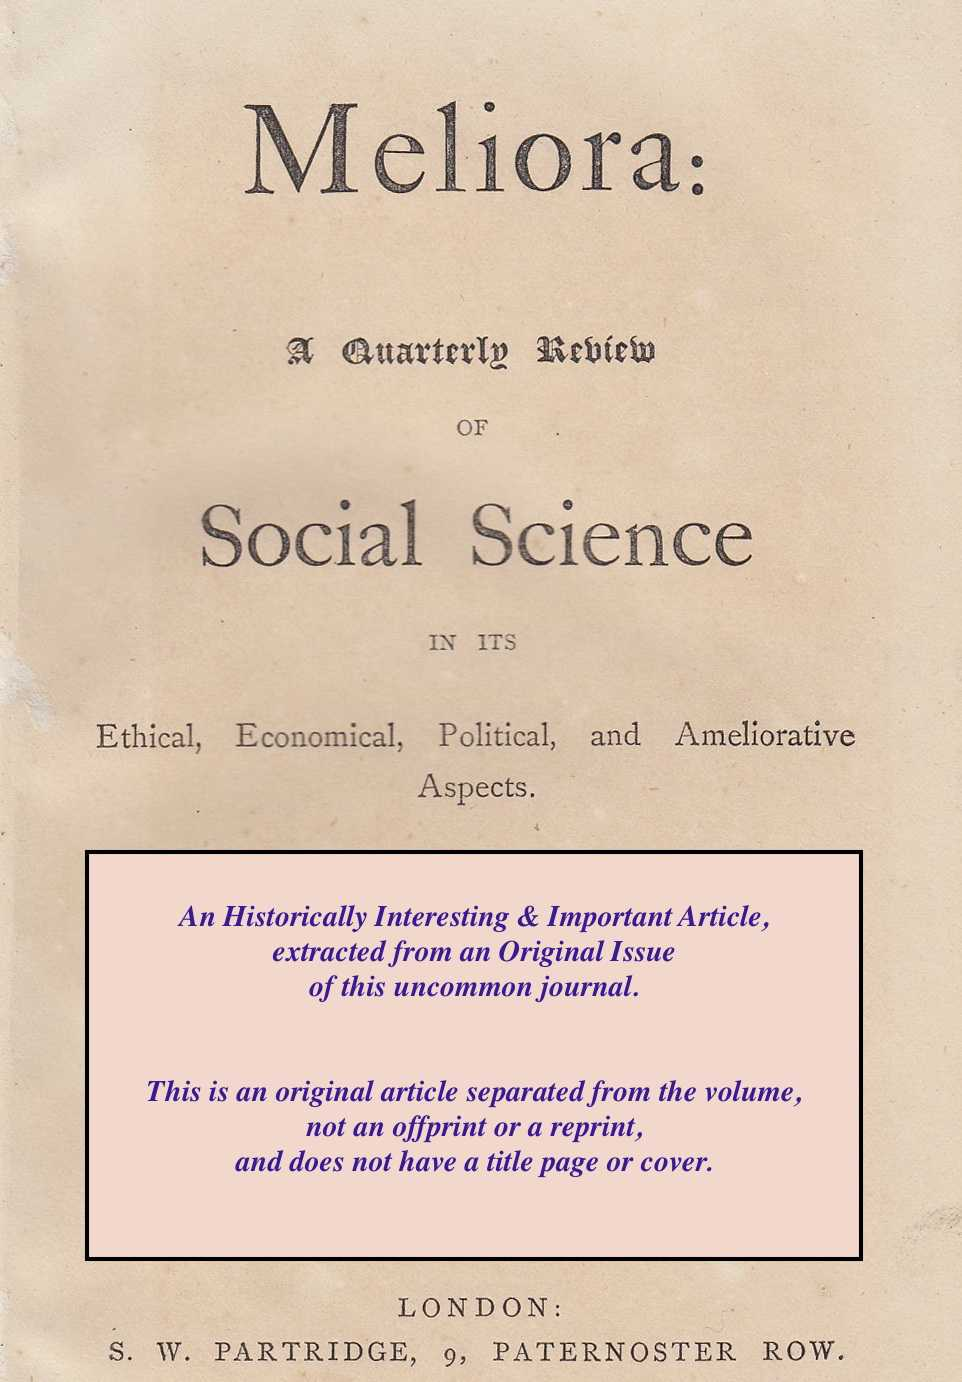 --- - The West Indies Past and Present. A rare original article from Meliora: A Quarterly Review of Social Science, 1861.